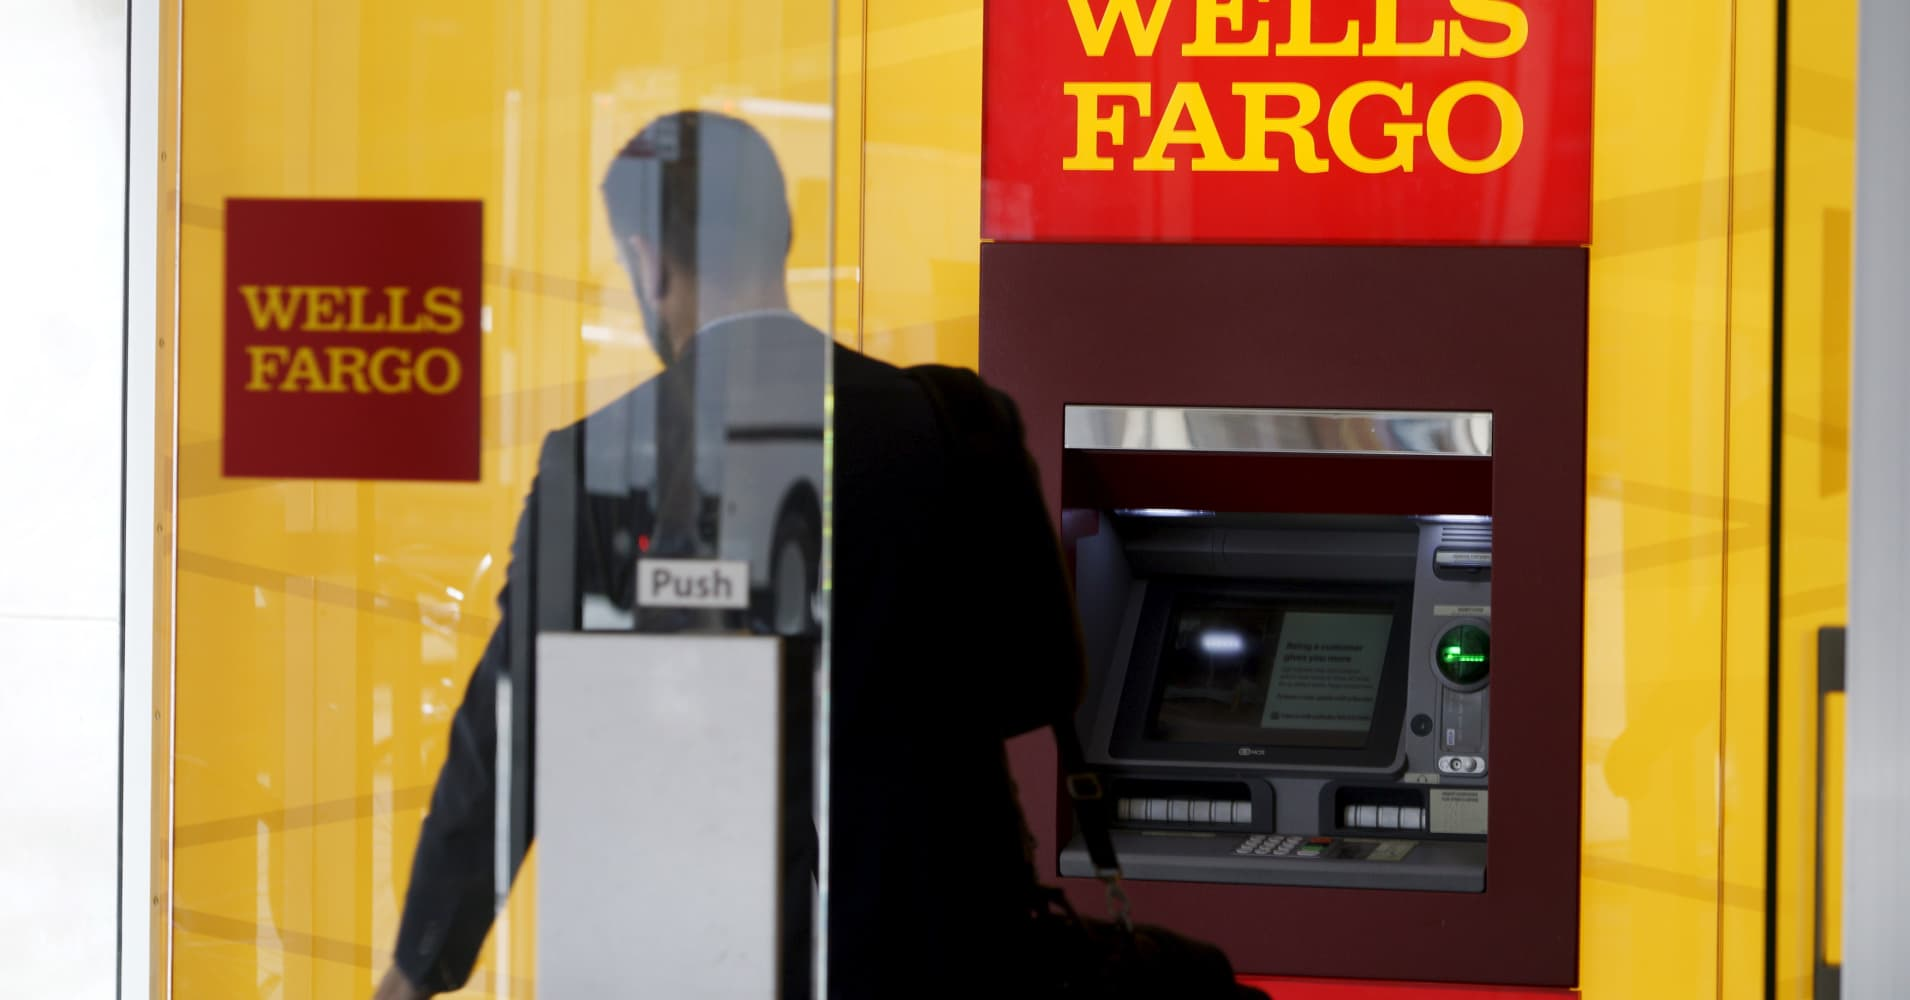 Betting against Buffett: Why Wells Fargo looks weak compared with other big banks